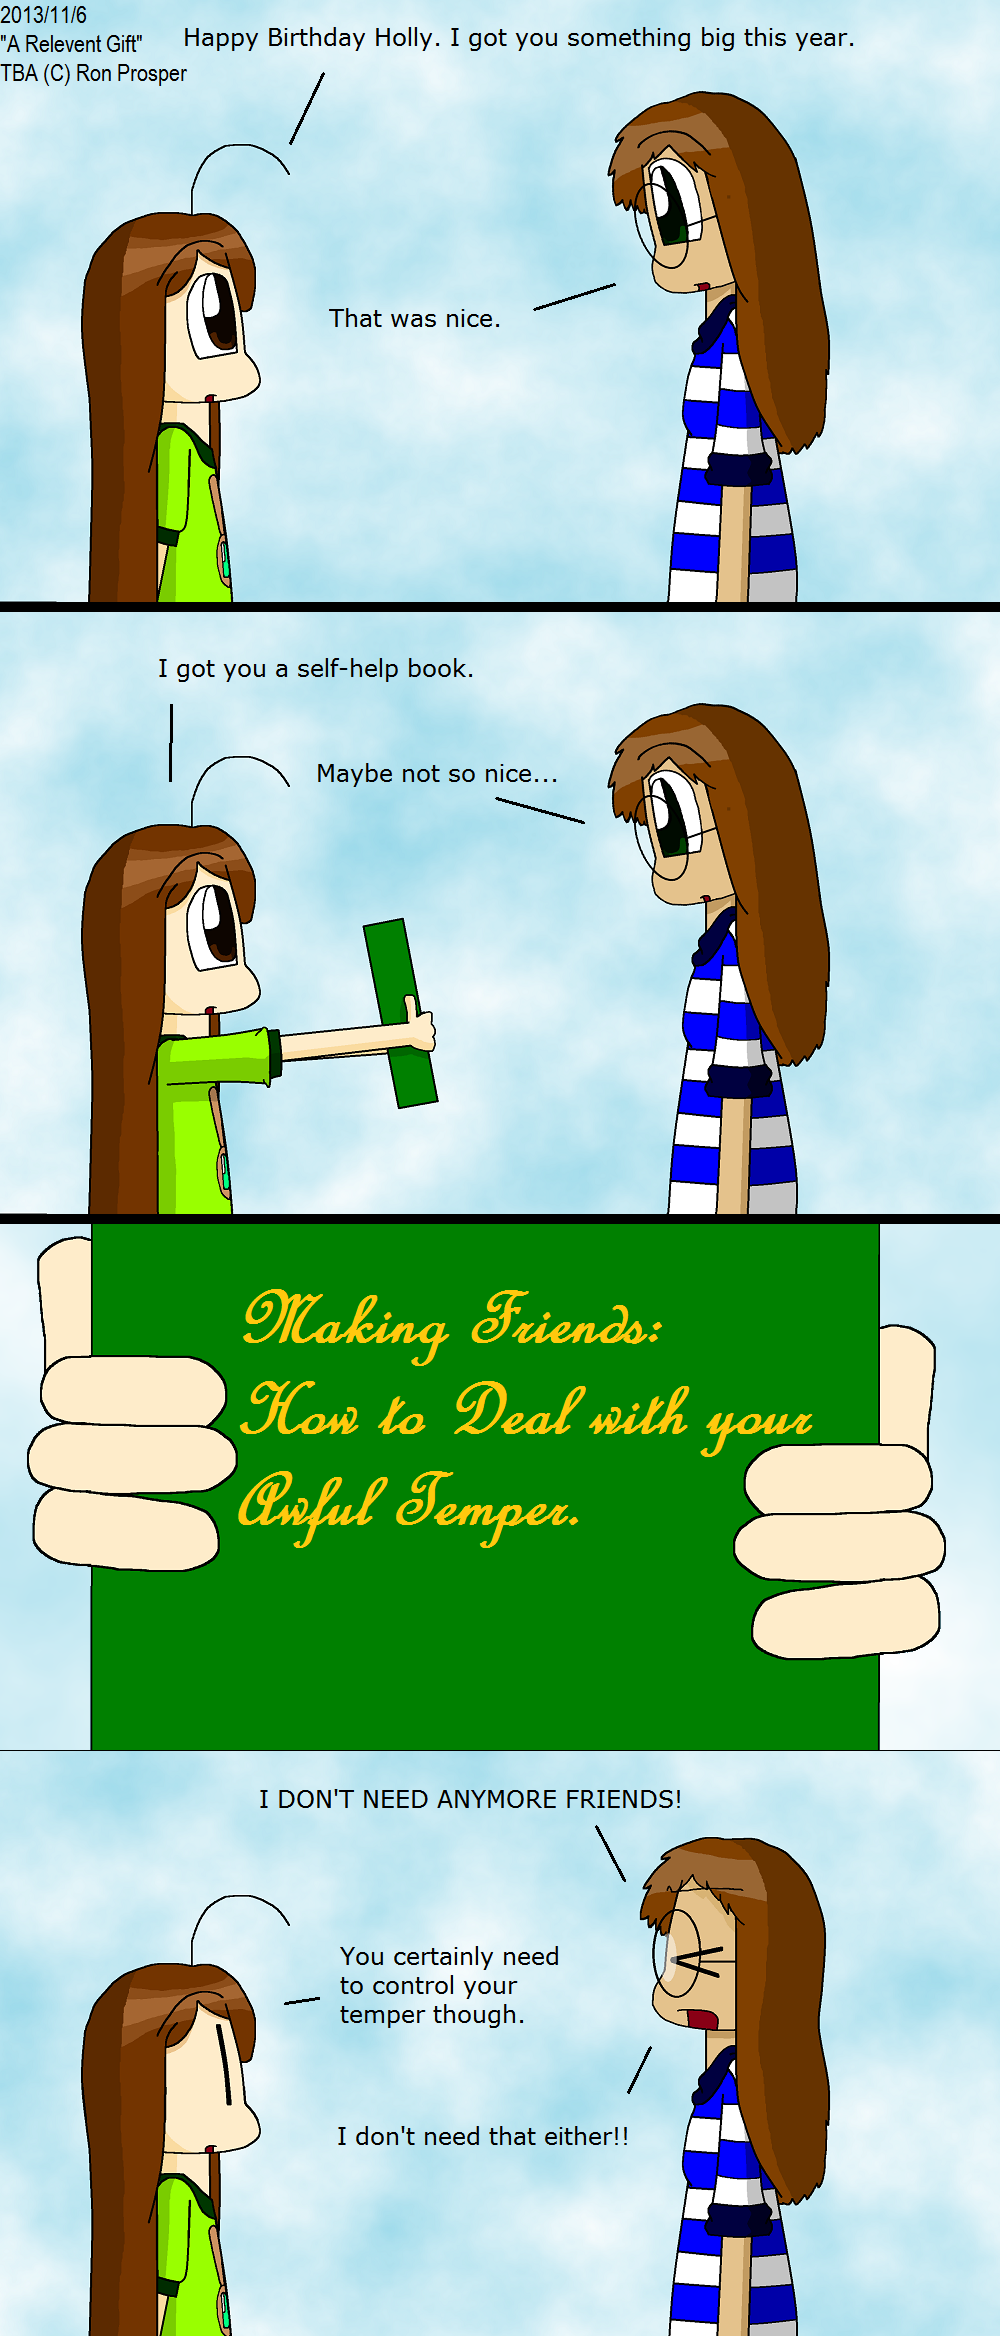 A Relevent Gift (11/6/13)